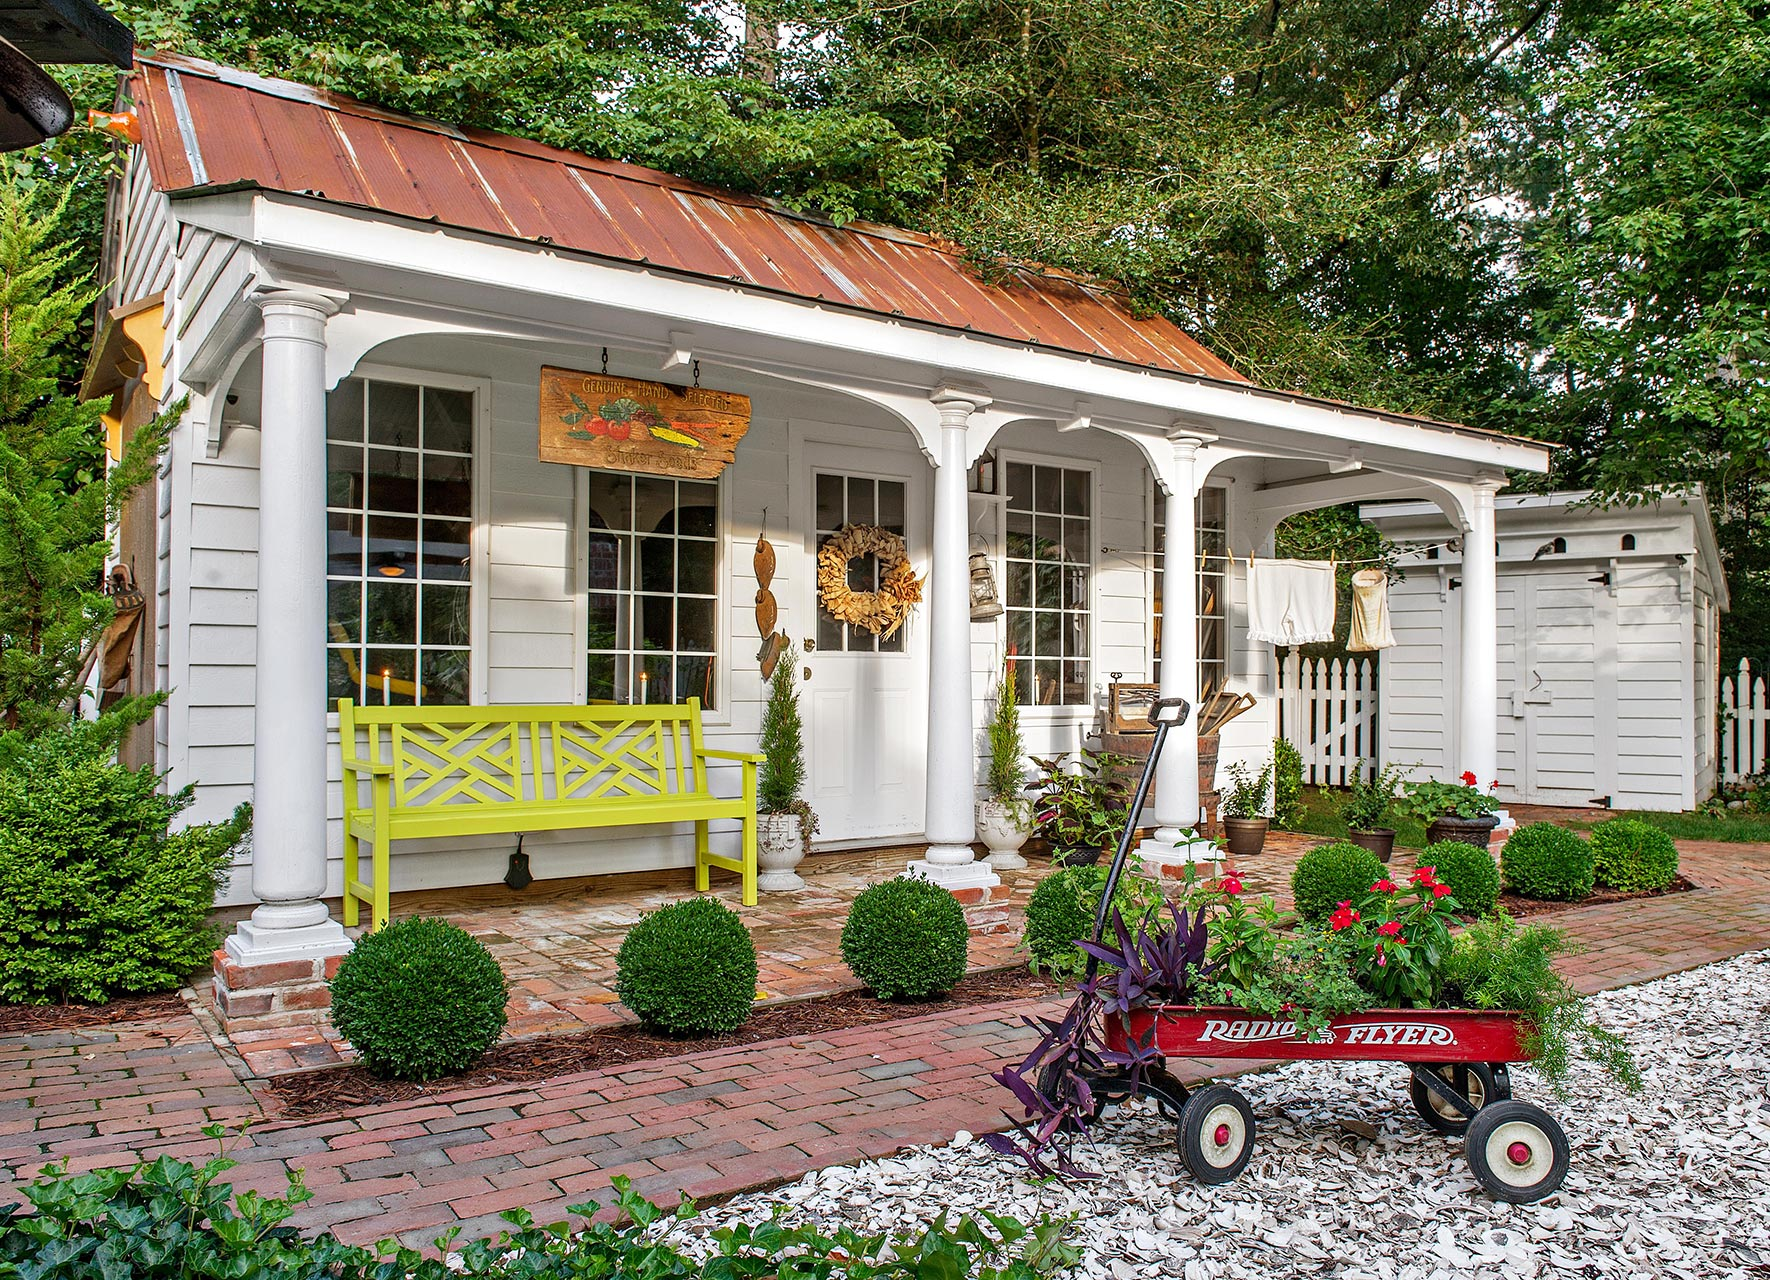 formal garden shed with porch and colonnade